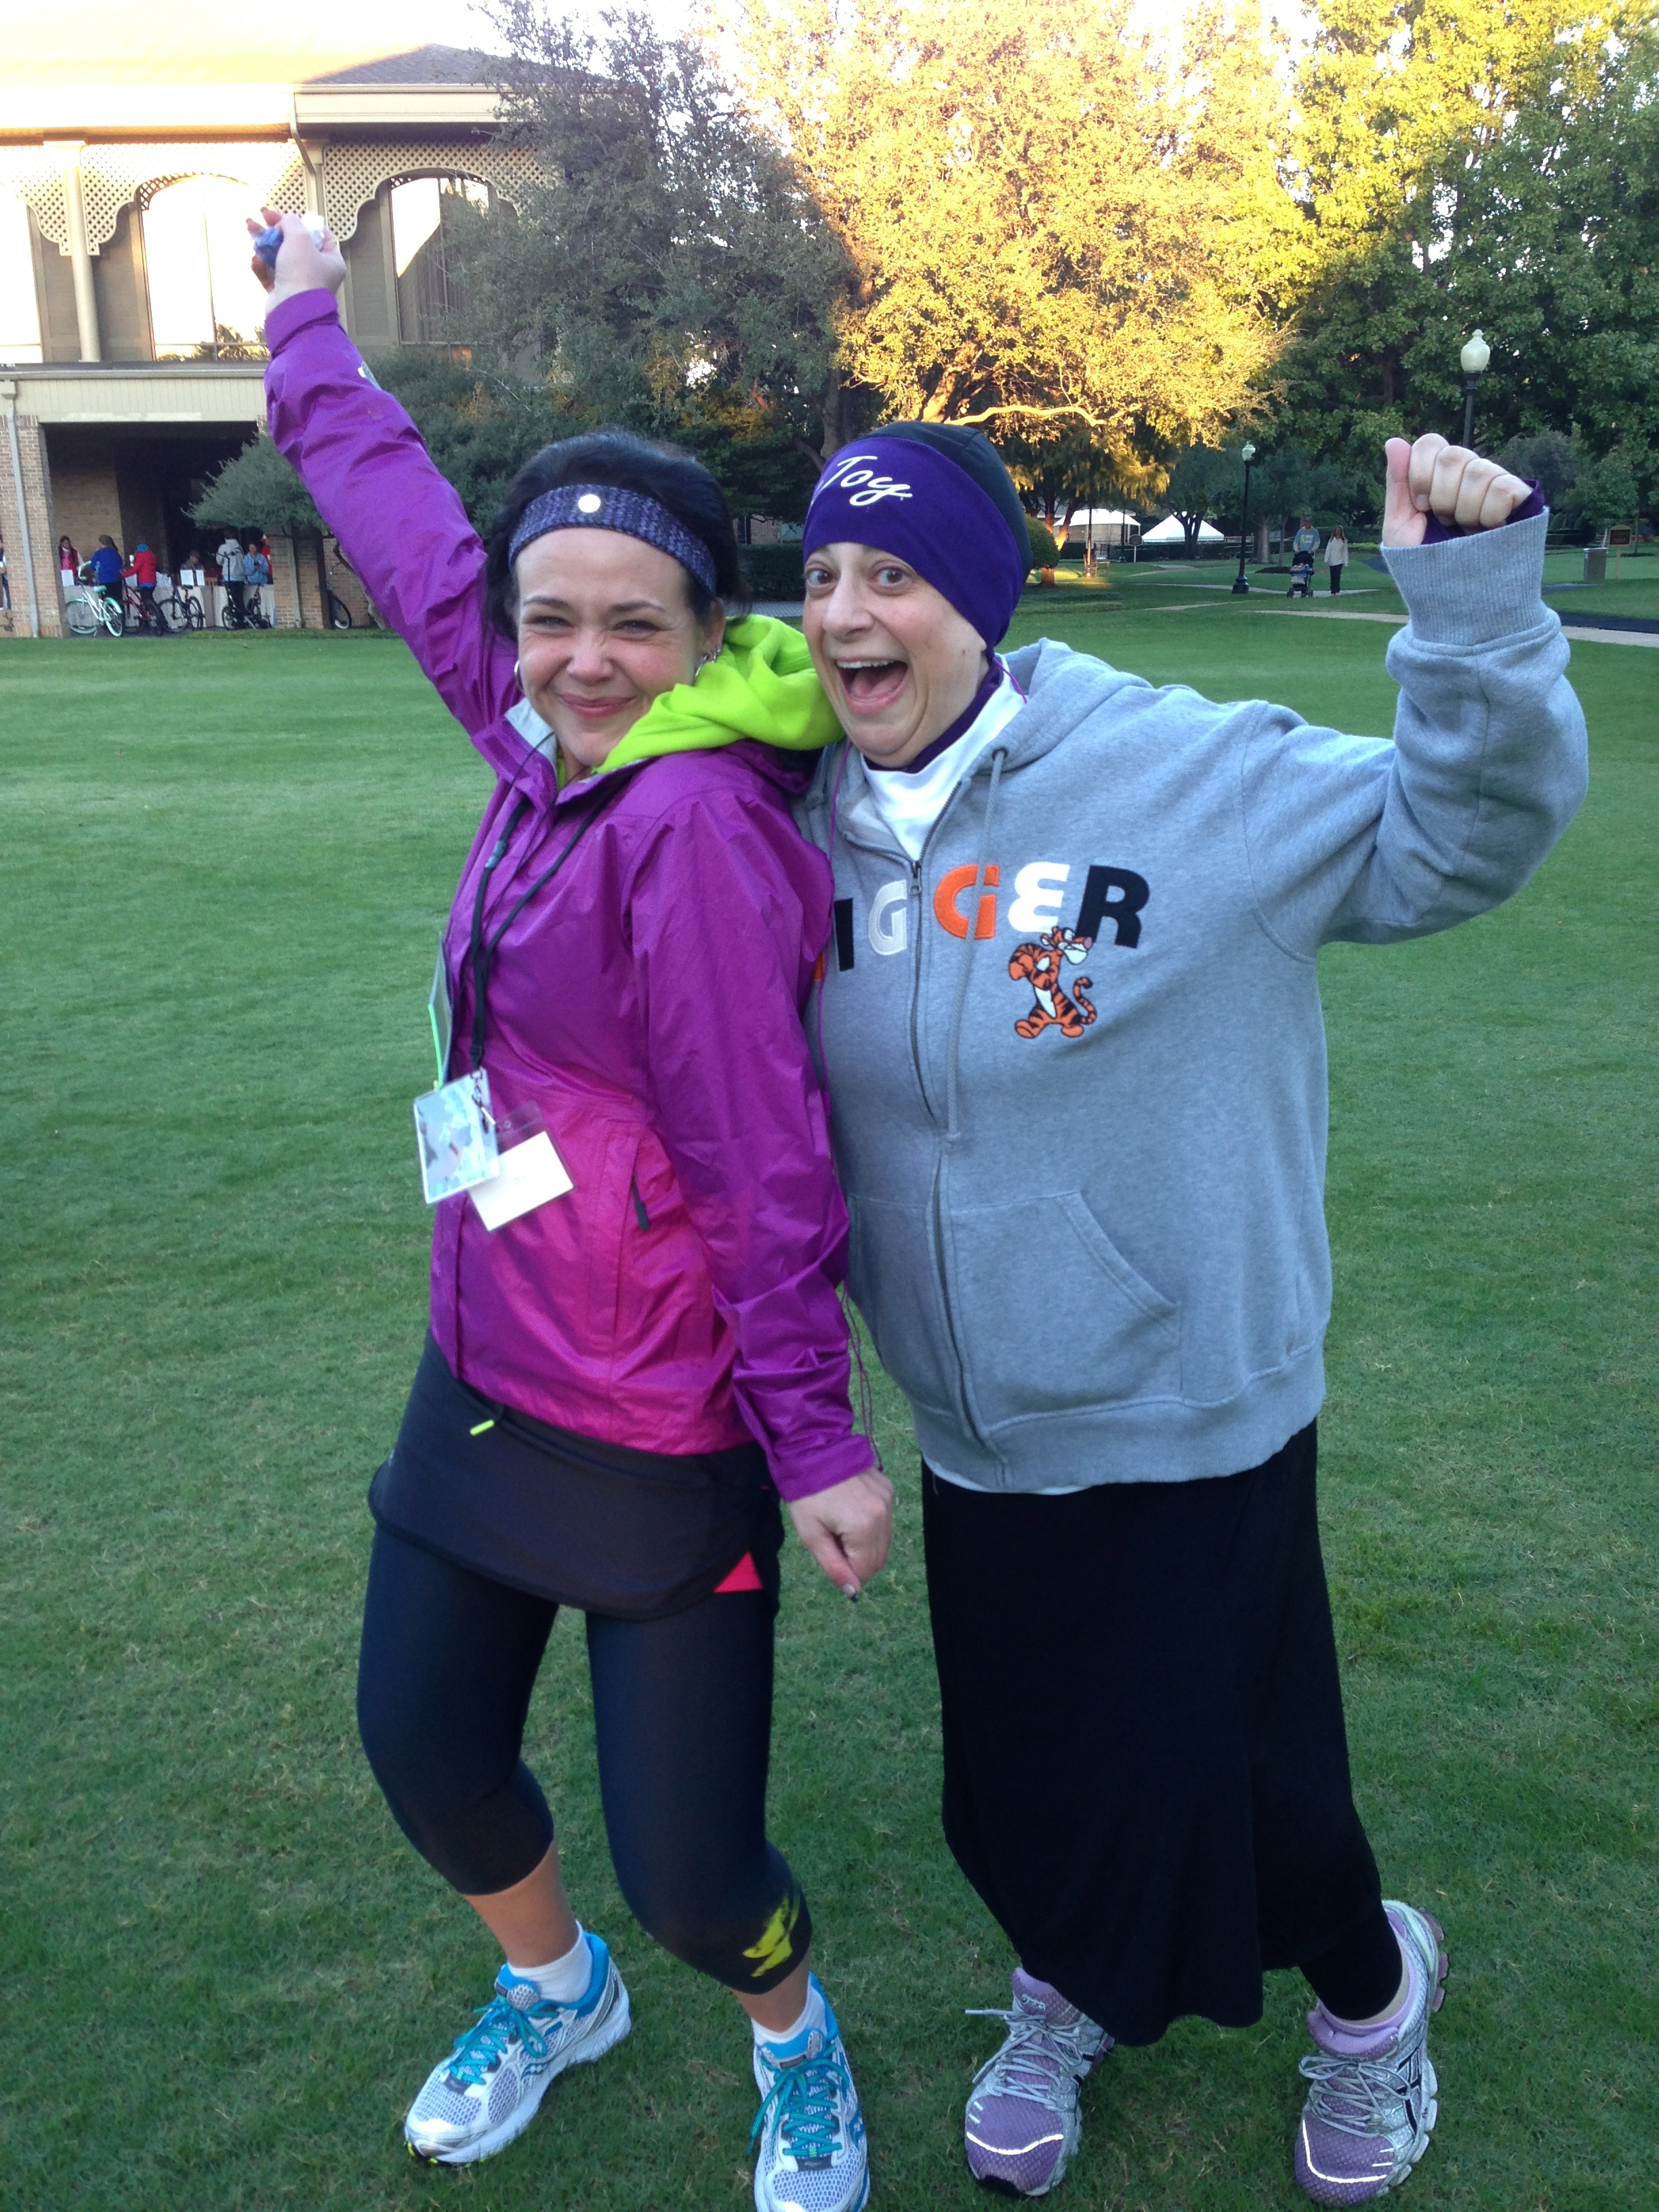 Another picture of my fellow Disney loving WLS BFF Joy Muller and I after we ran our FIRST 5K at the Walk from Obesity in Dallas TX Oct. 2012